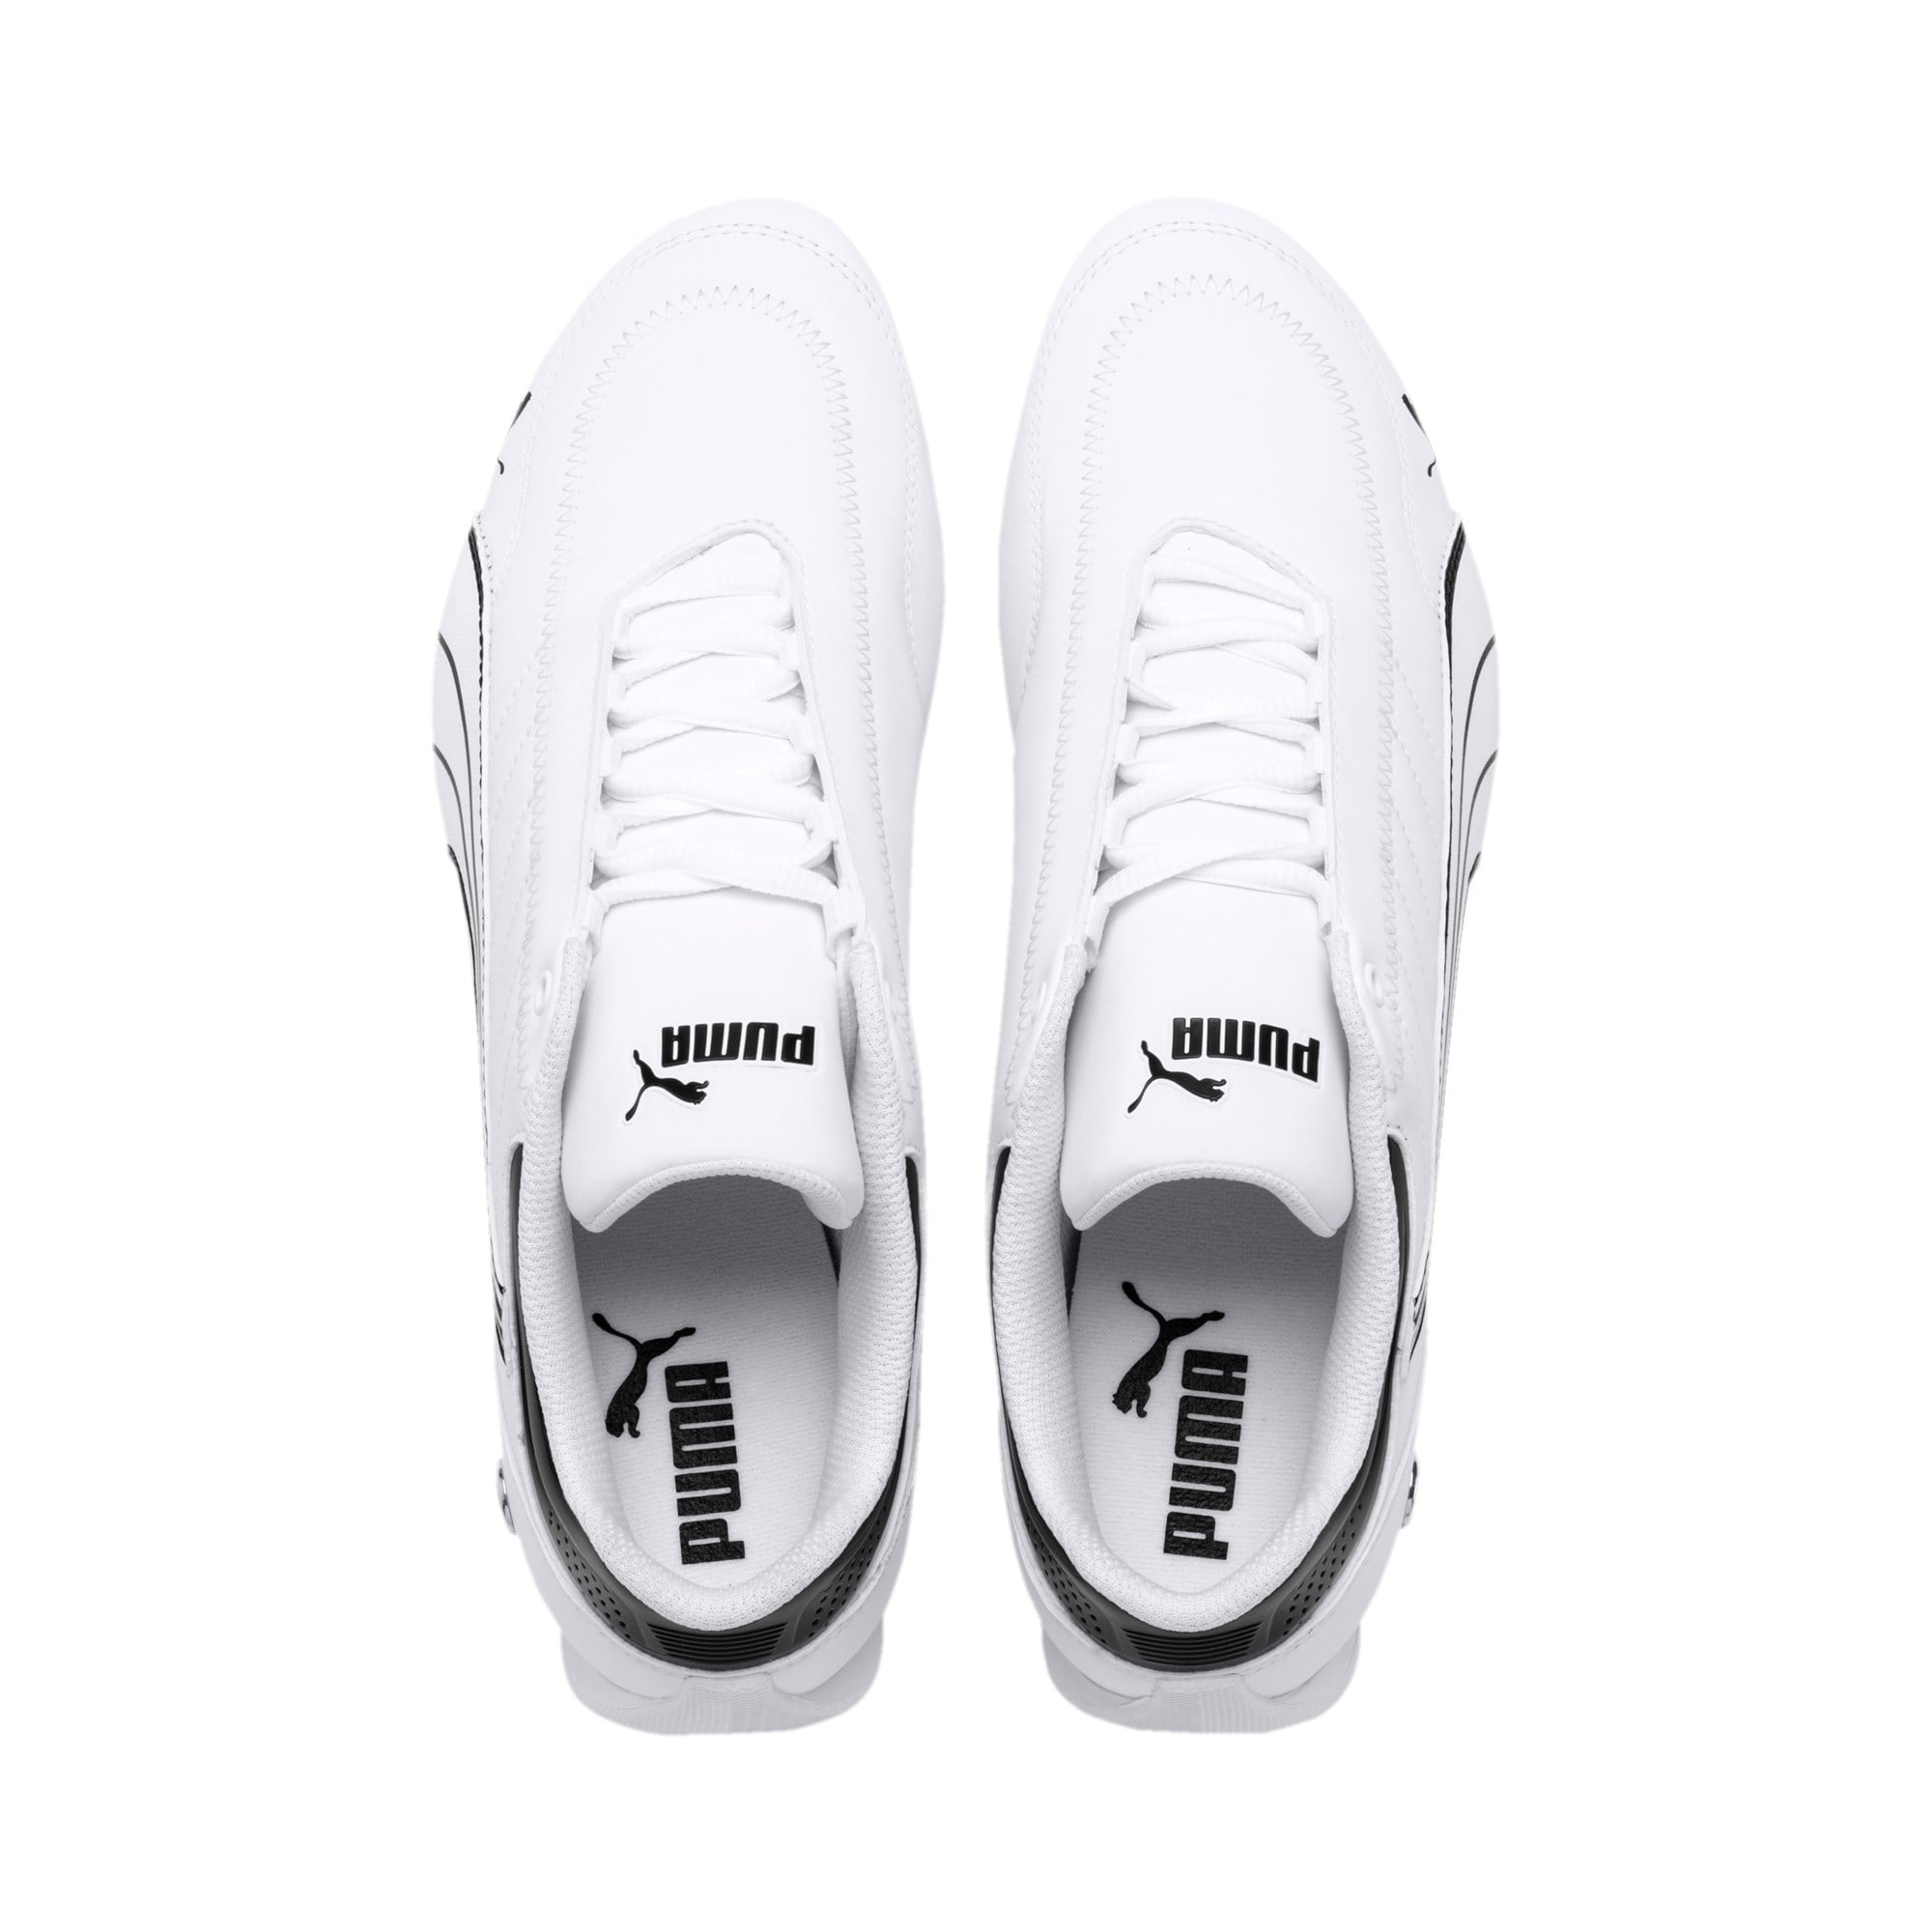 Thumbnail 7 of BMW M Motorsport Future Kart Cat sportschoenen, Puma White-Puma Black, medium